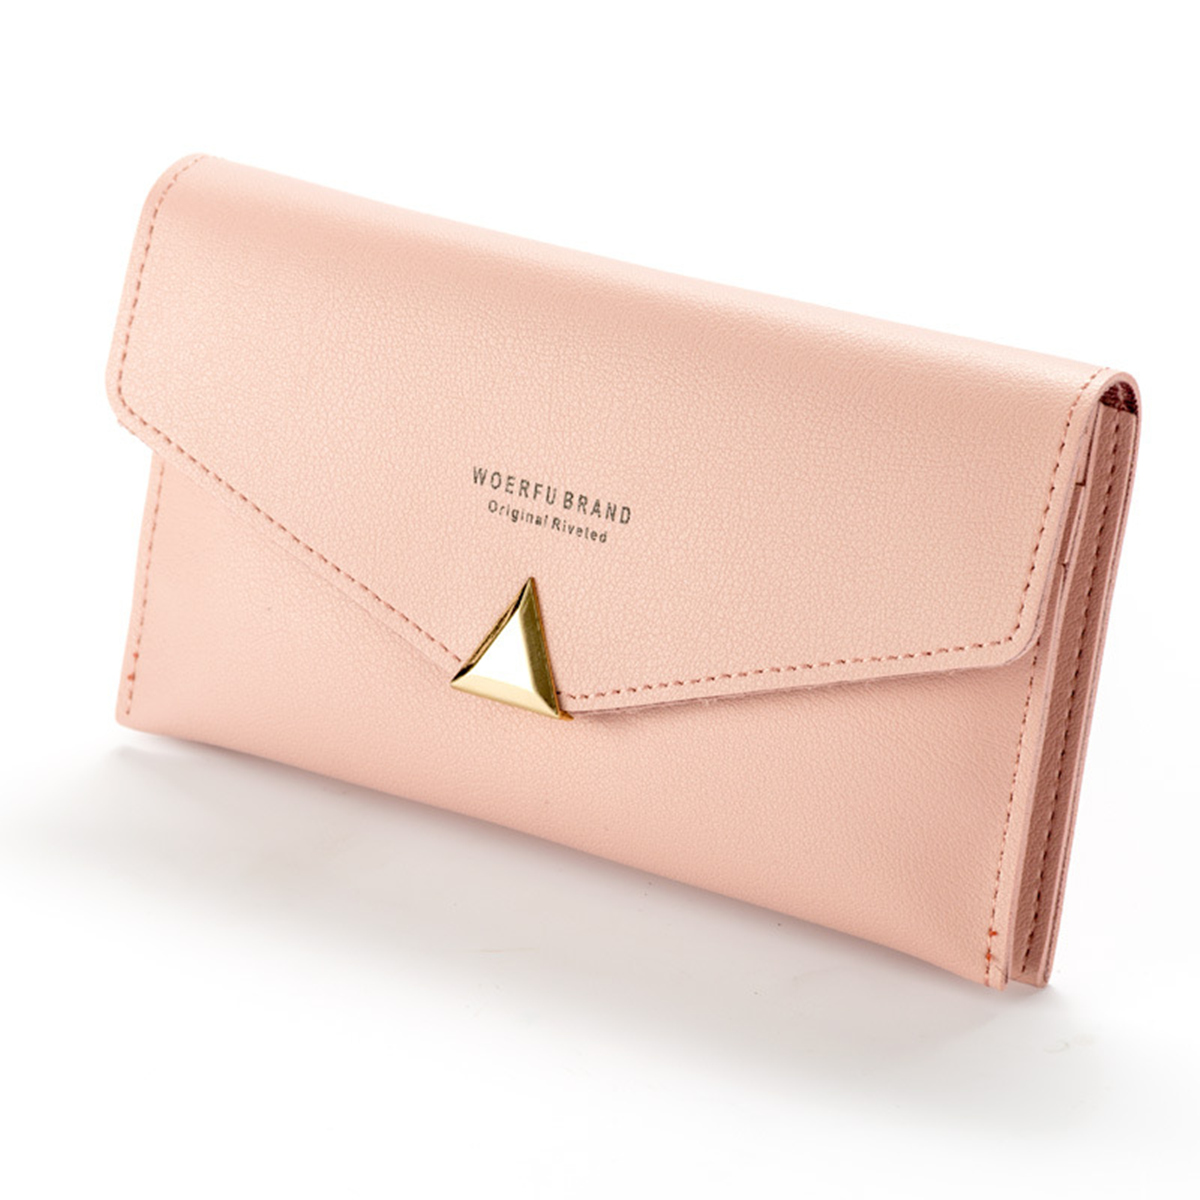 Women Leather Wallet Long Purse Large Capacity Phone Case Card Holder for Phone under 6.5 inches